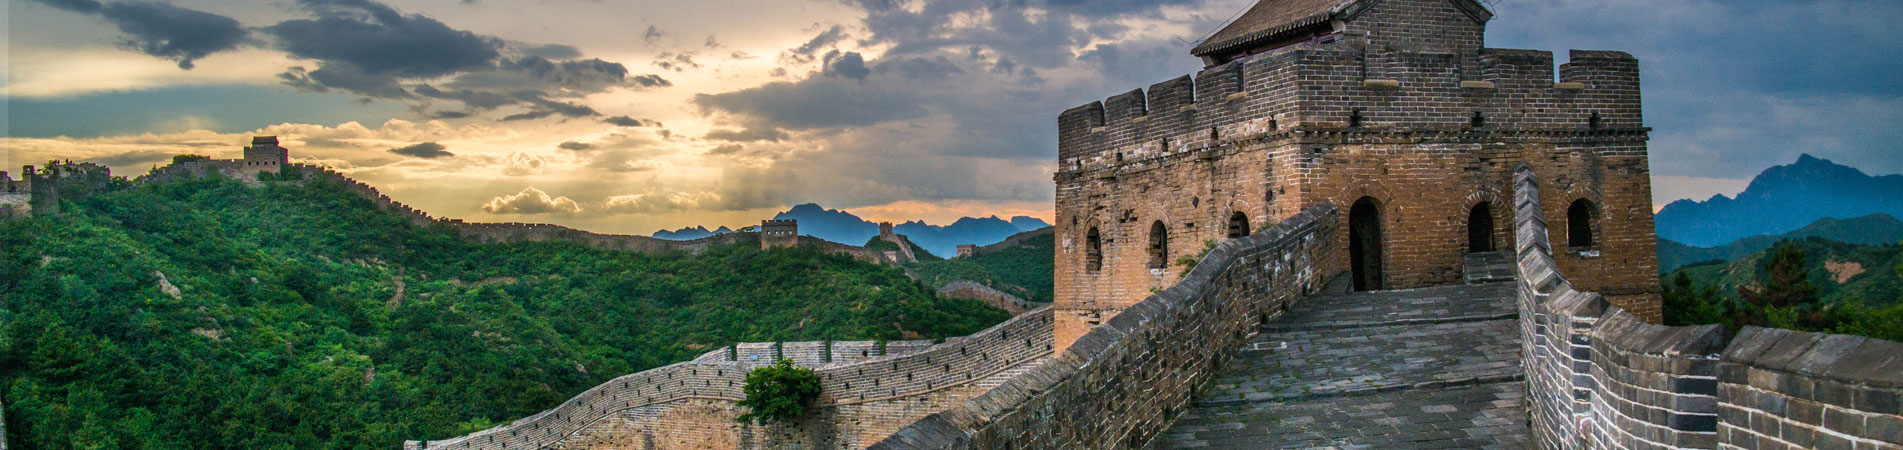 Great Wall of China, 2 days Beijing tour from Shanghai